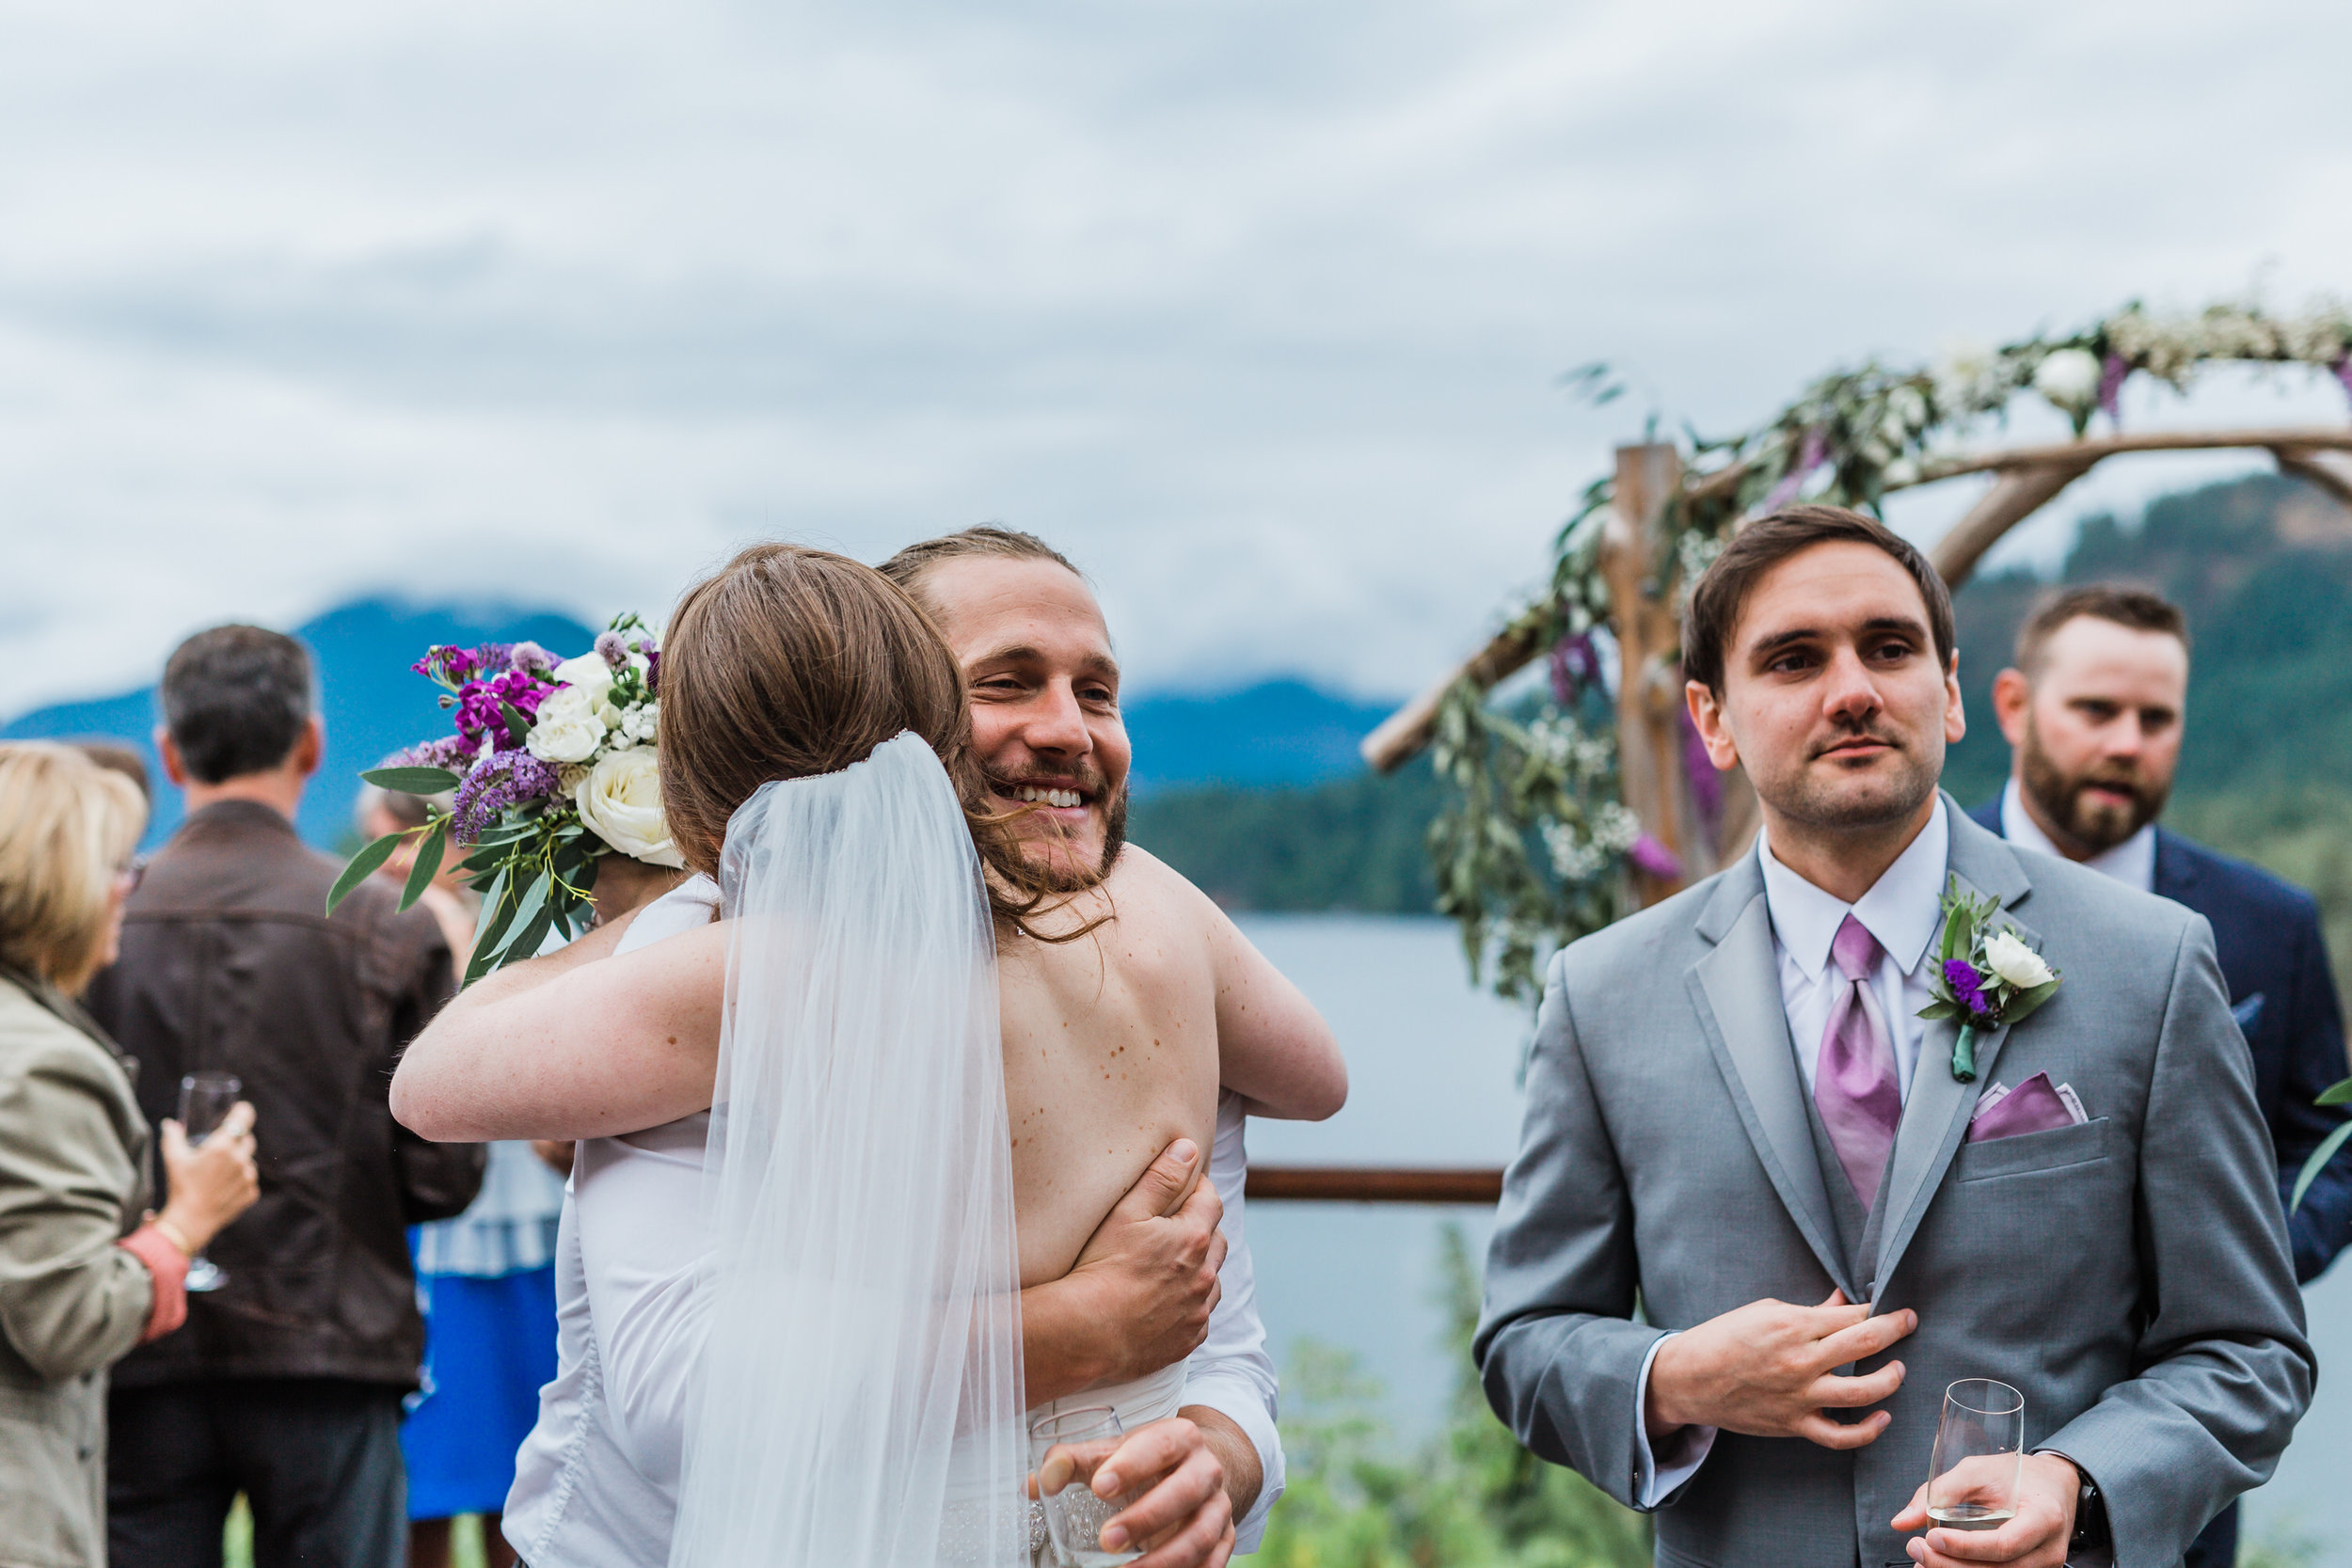 West Coast Wilderness Lodge Wedding Photos - Vancouver Wedding Photographer & Videographer - Sunshine Coast Wedding Photos - Sunshine Coast Wedding Photographer - Jennifer Picard Photography - IMG_5245.jpg